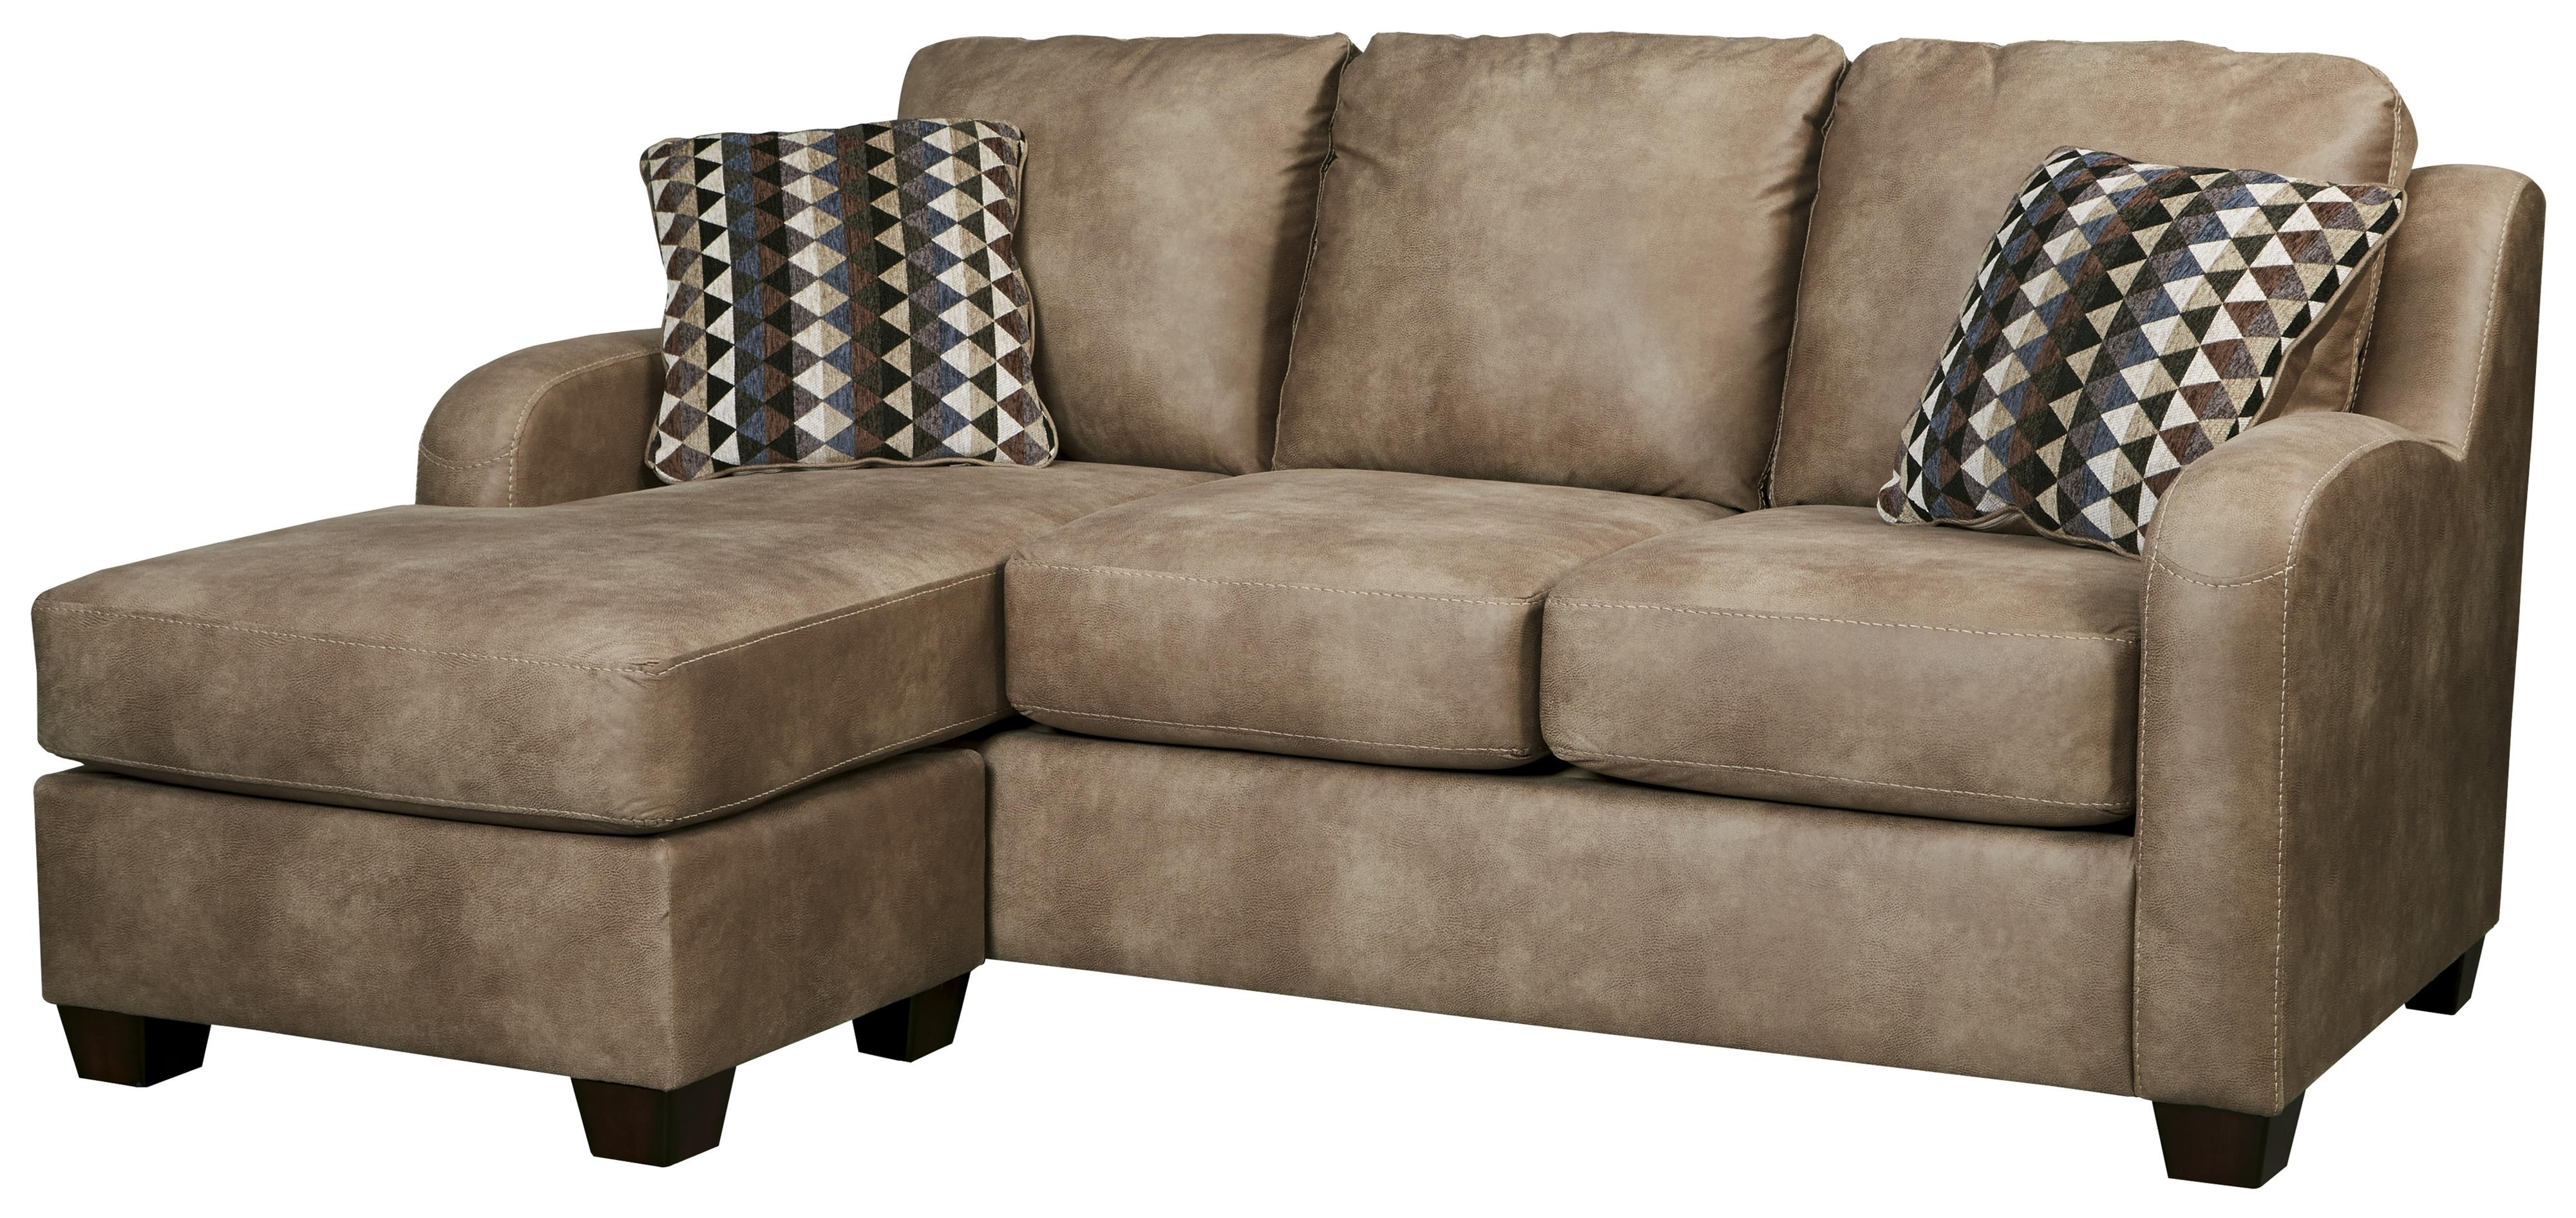 Most Recent Leather Sofas With Chaise With Regard To Contemporary Faux Leather Sofa Chaisebenchcraft (View 14 of 15)